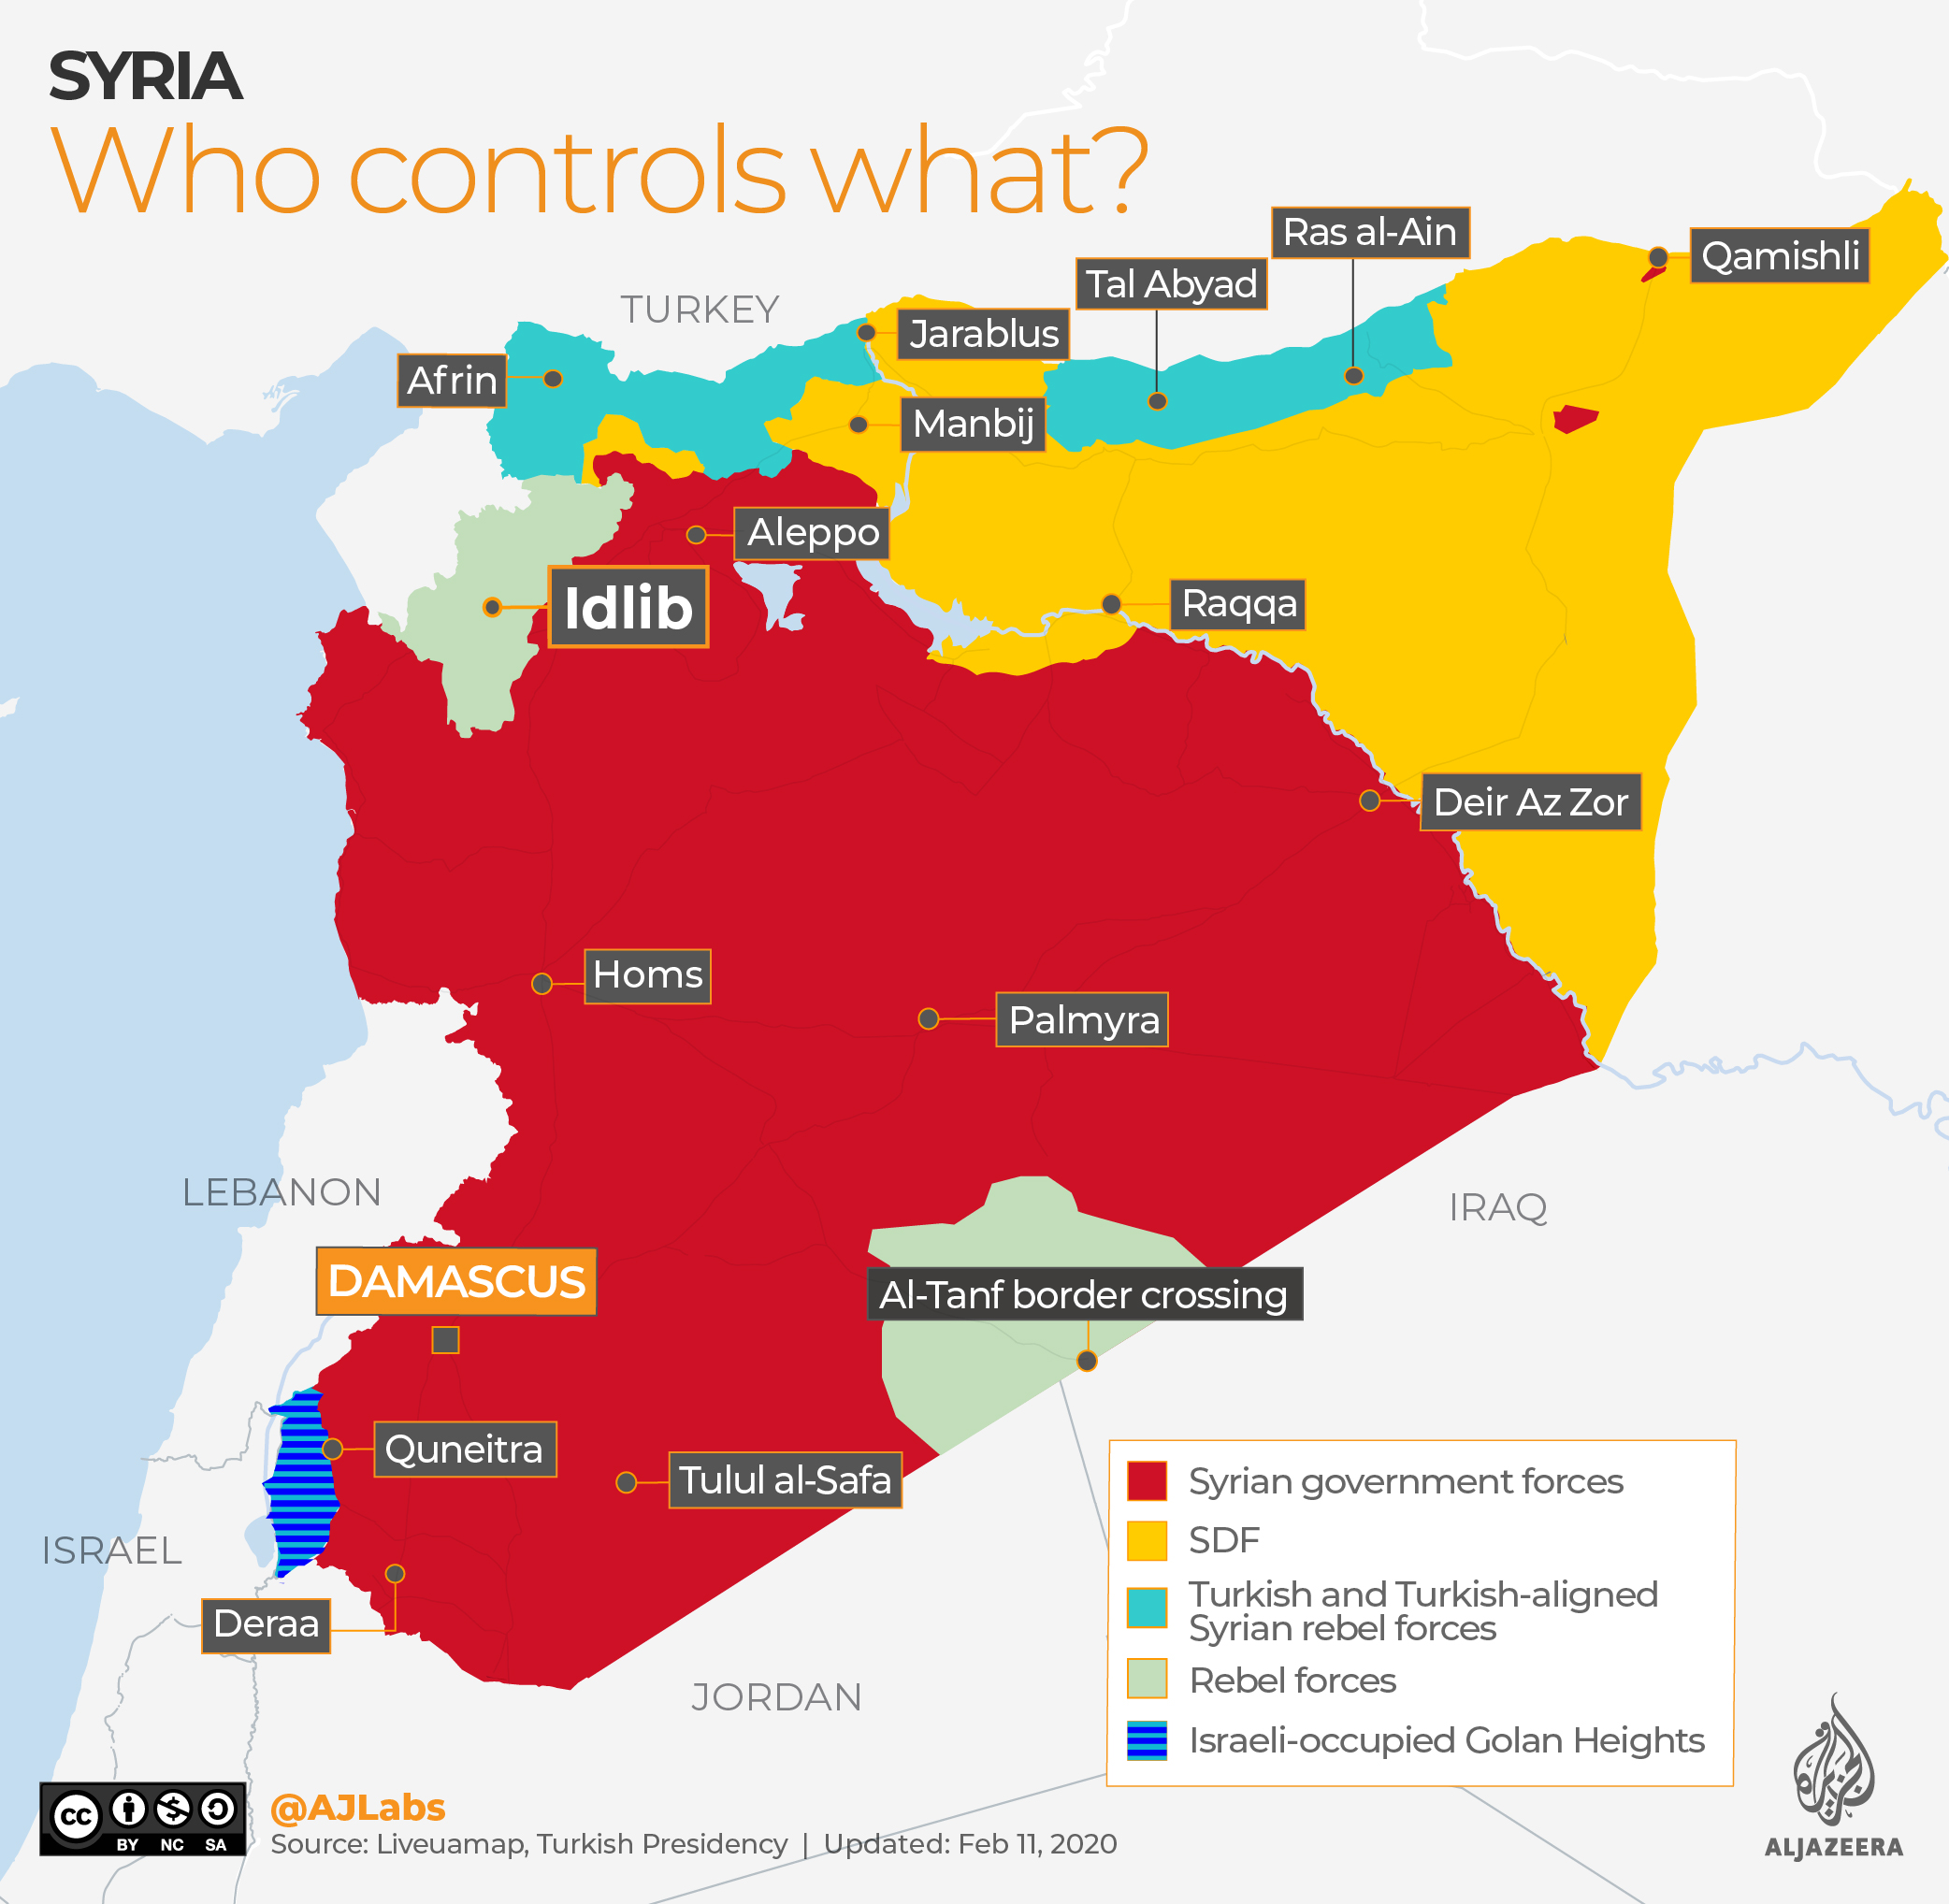 Baby Health in Winter INTERACTIVE: Syria Who controls what map - FEB 11 2020